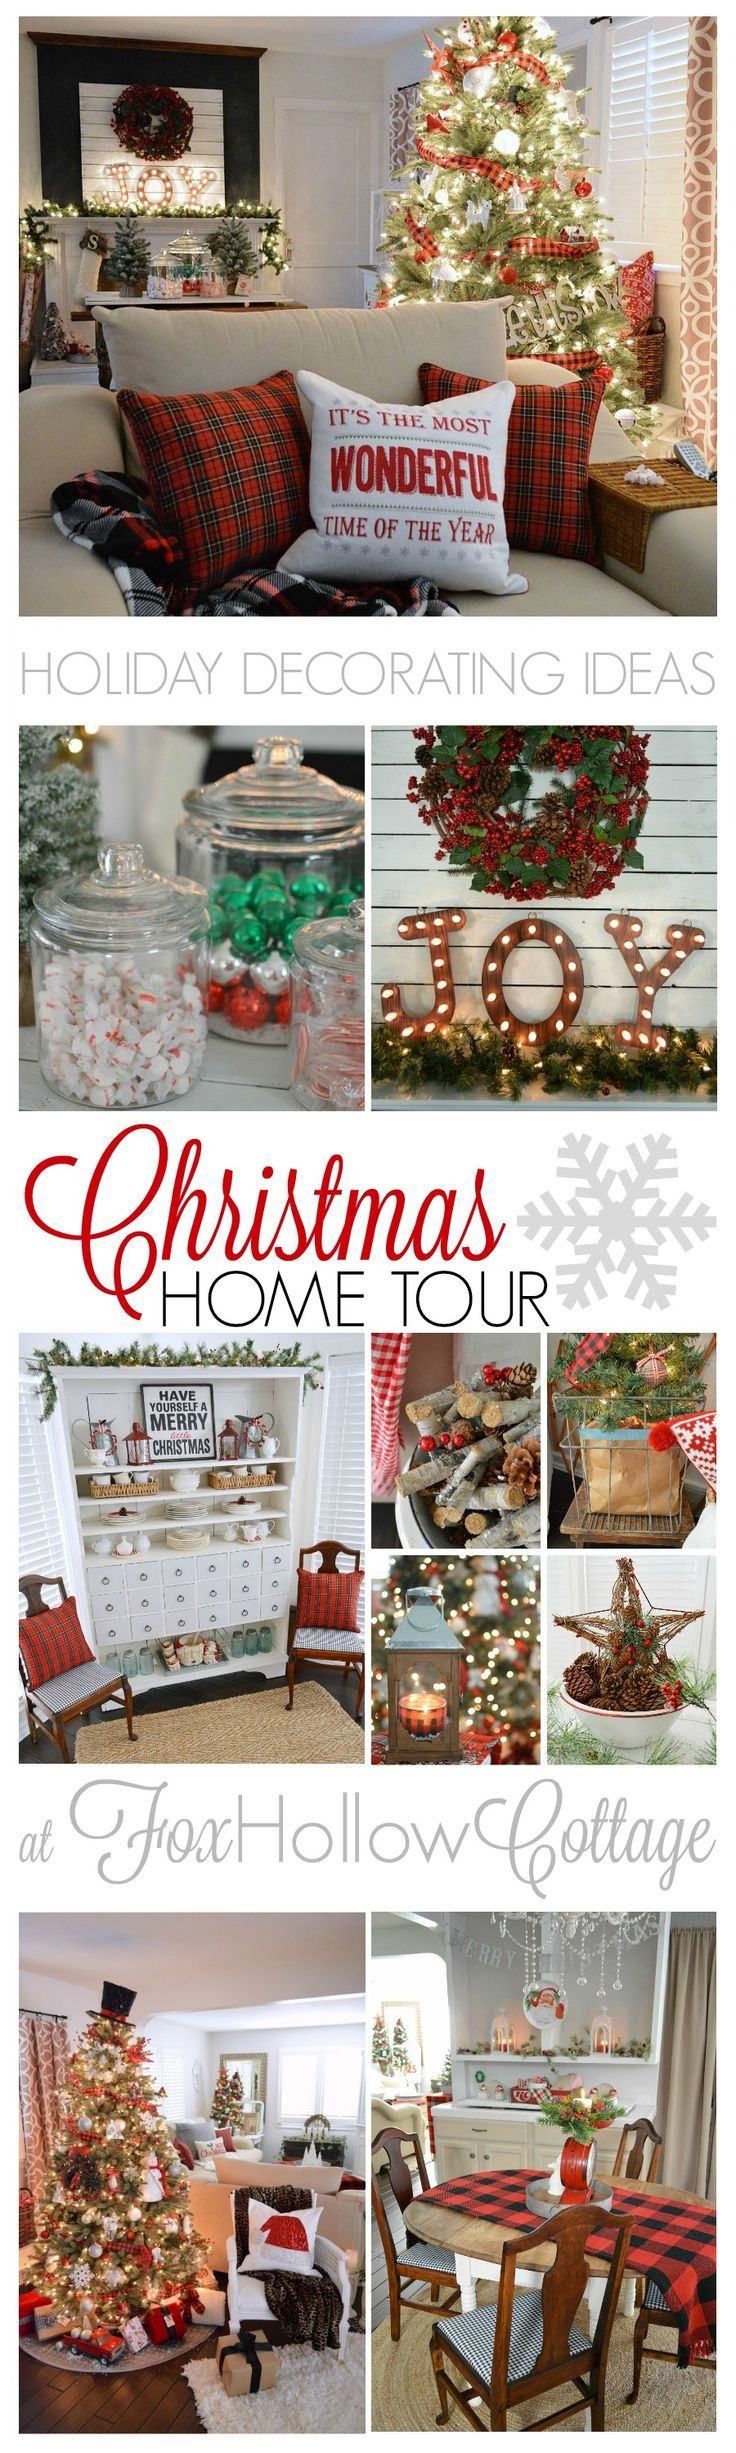 Christmastime at Fox Hollow Cottage. Visit this 1920's cottage home, decorated in traditional Christmas red with splashes of vintage & DIY accompanied by touches of cozy plaid! Find these Holiday Decorating Ideas and More in the Cherished Christmas Home Tour with Country Living at http://foxhollowcottage.com